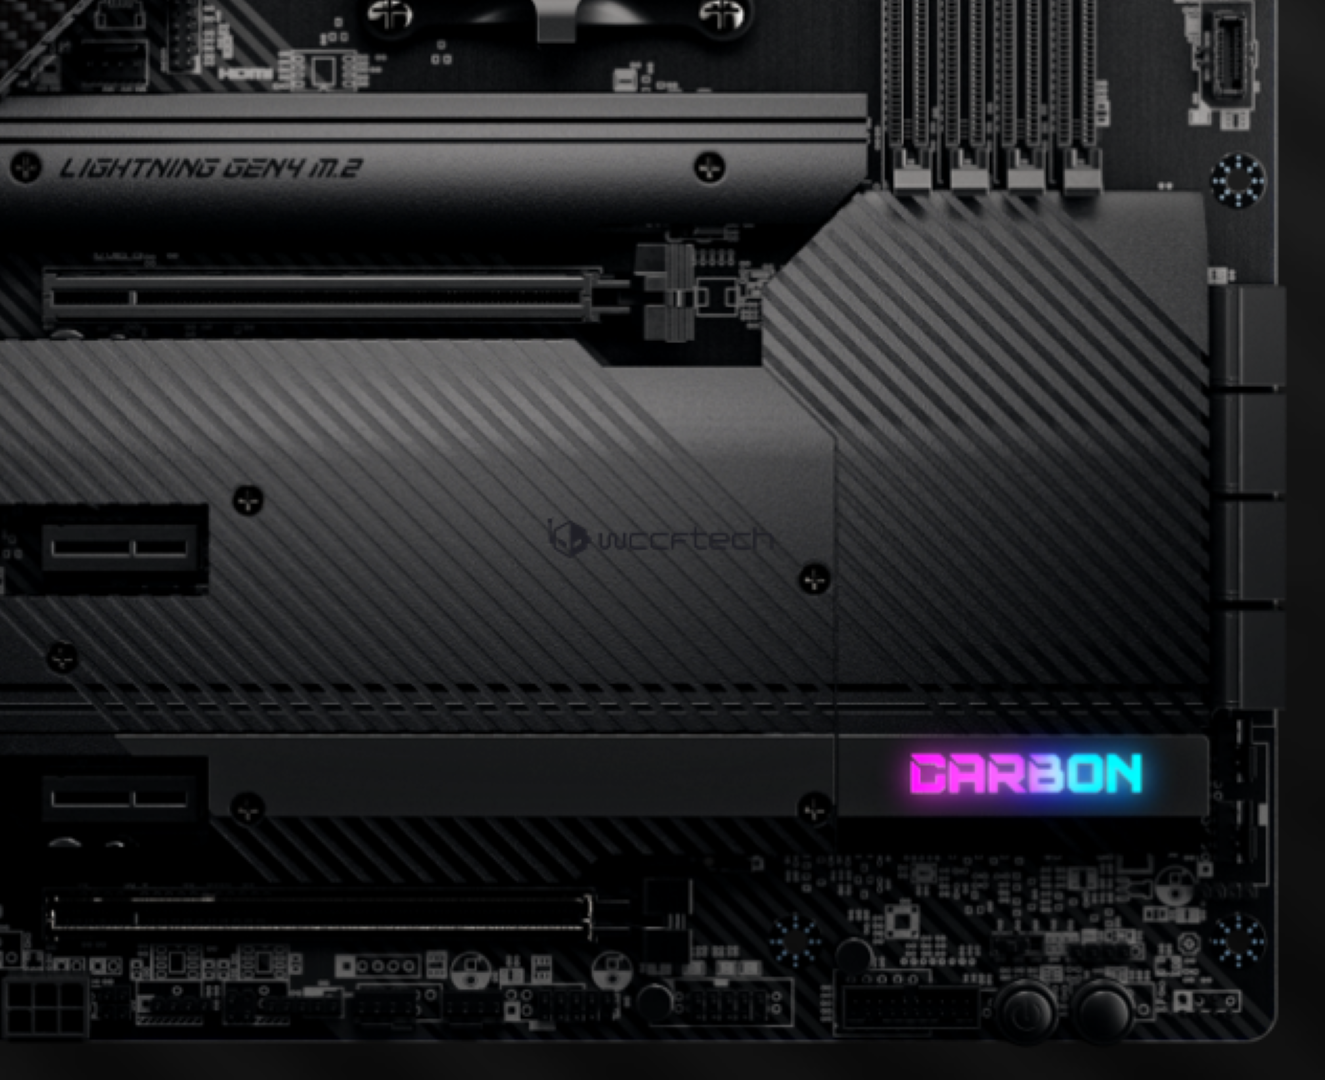 msi-x570s-motherboard-lineup-for-amd-ryzen-am4-desktop-cpus-leaks-out,-first-fanless-x570-board-pictured-too